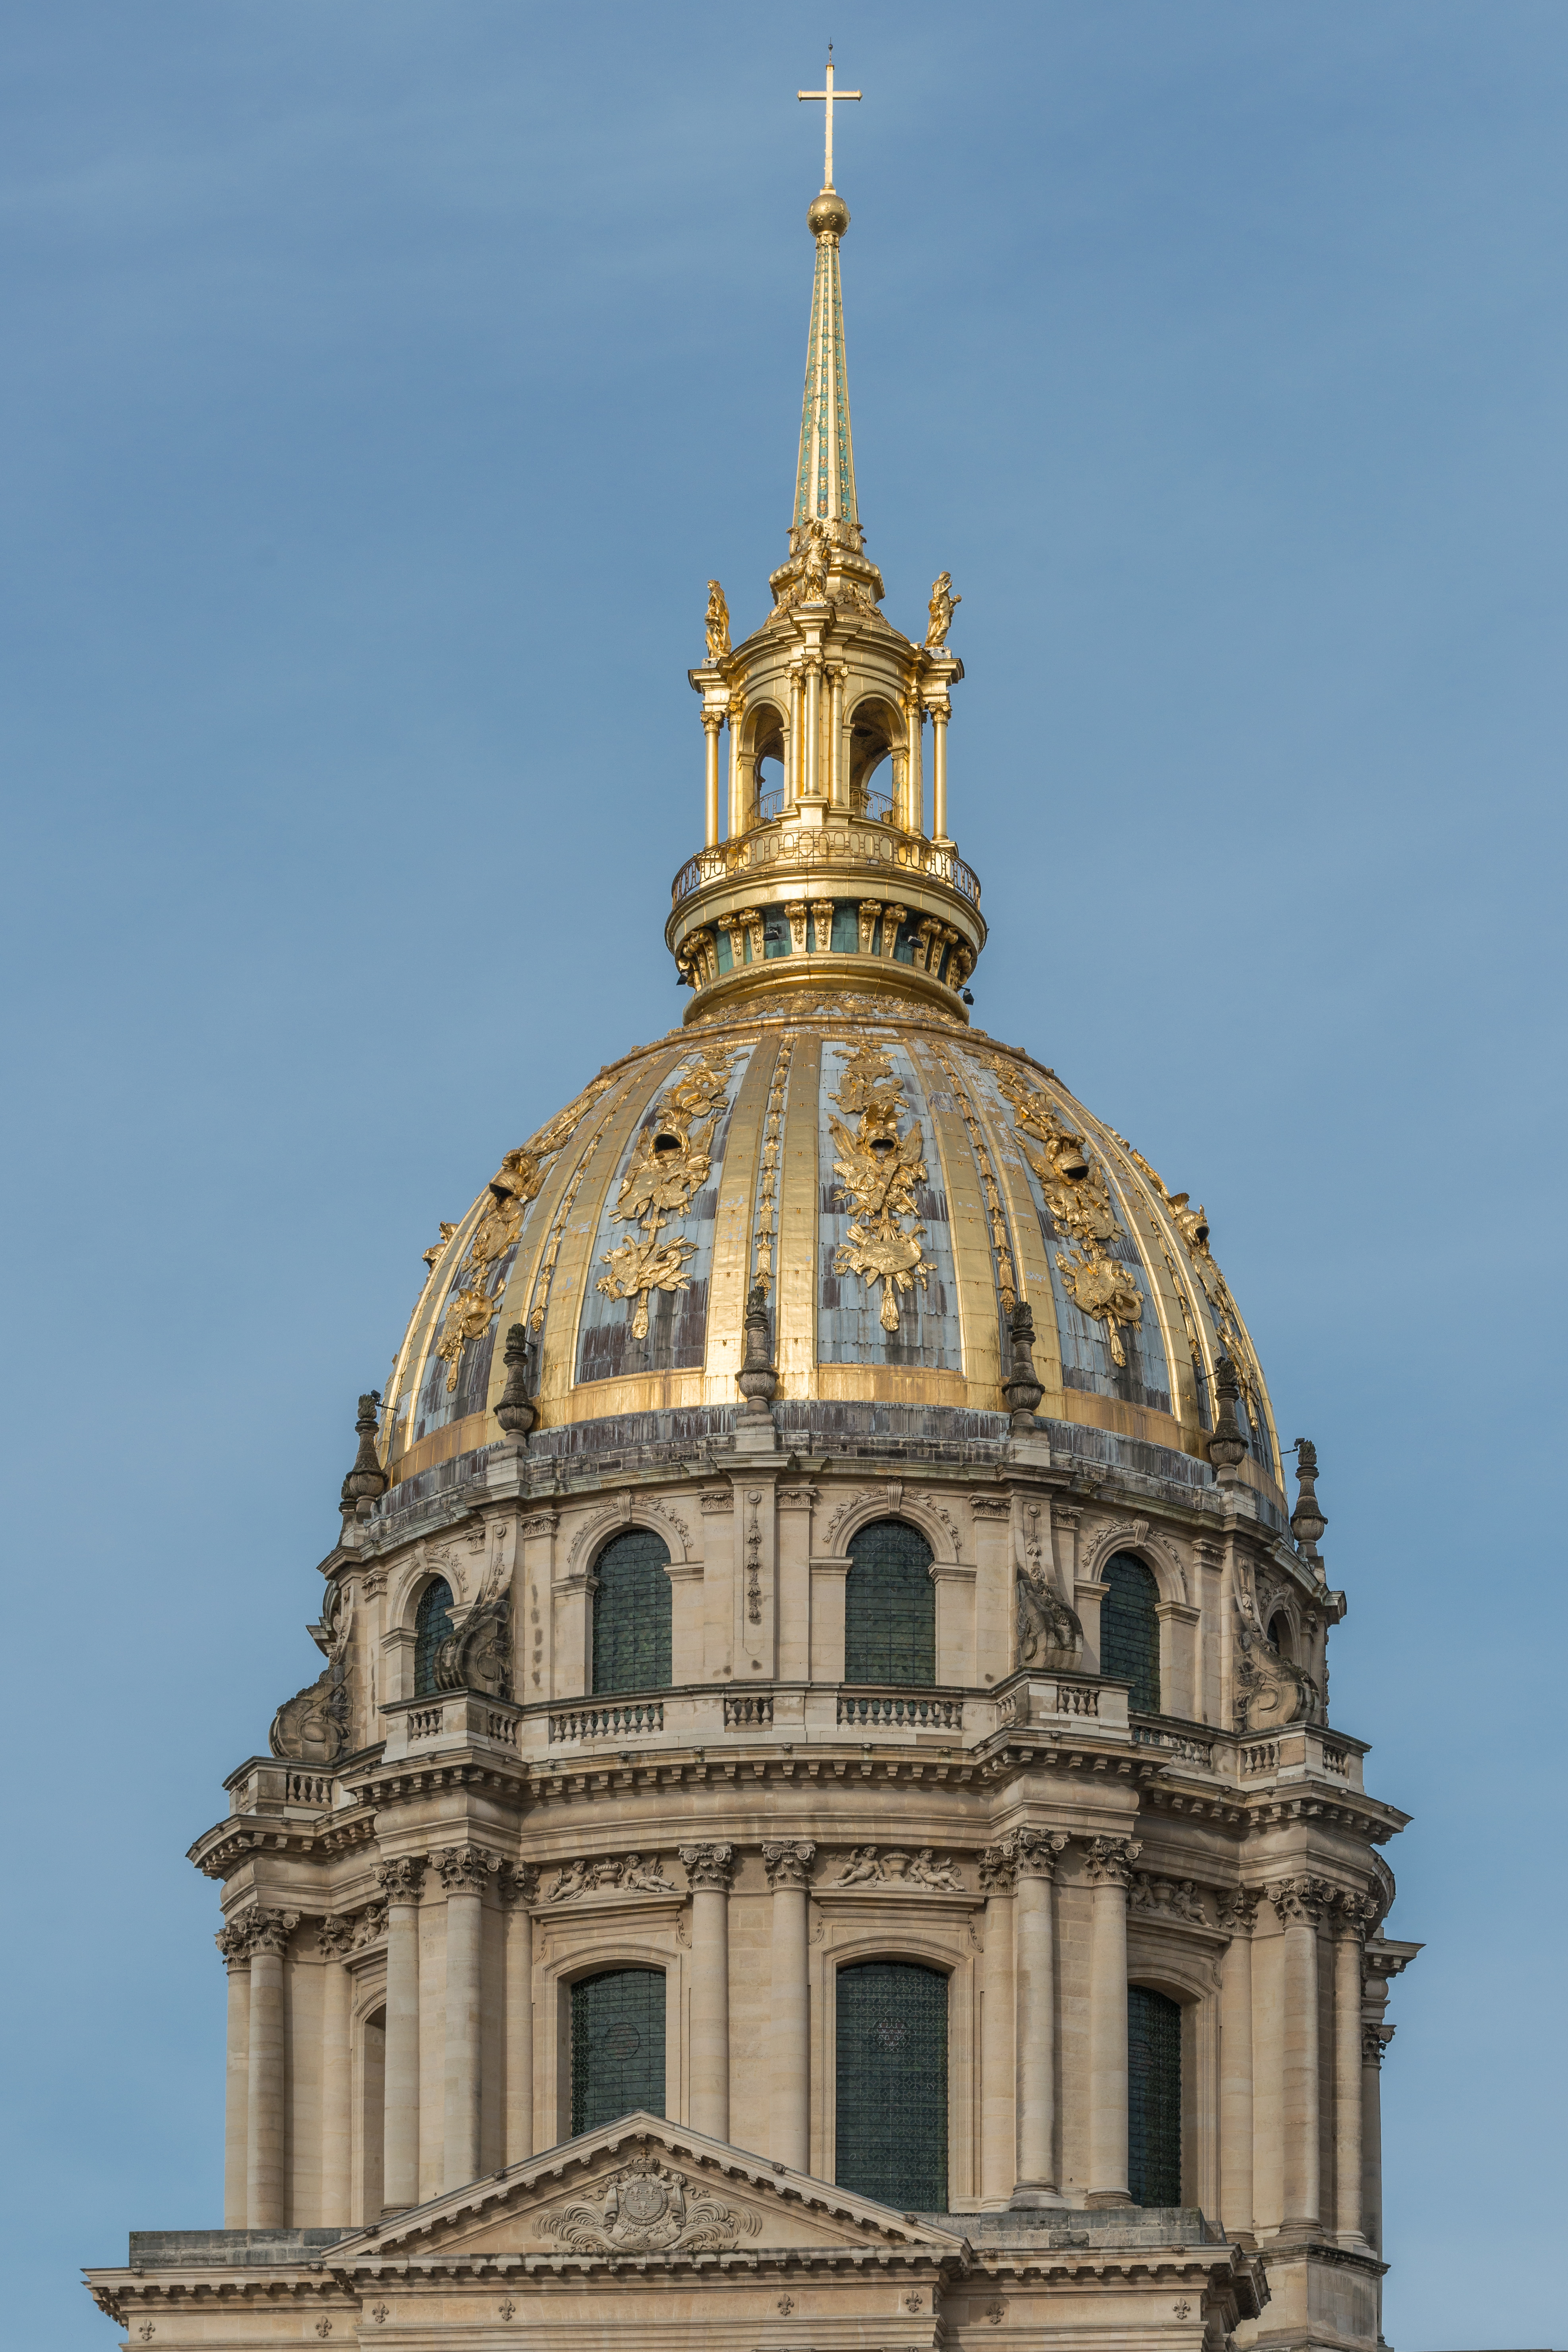 file d me des invalides south view 140201 wikimedia commons. Black Bedroom Furniture Sets. Home Design Ideas